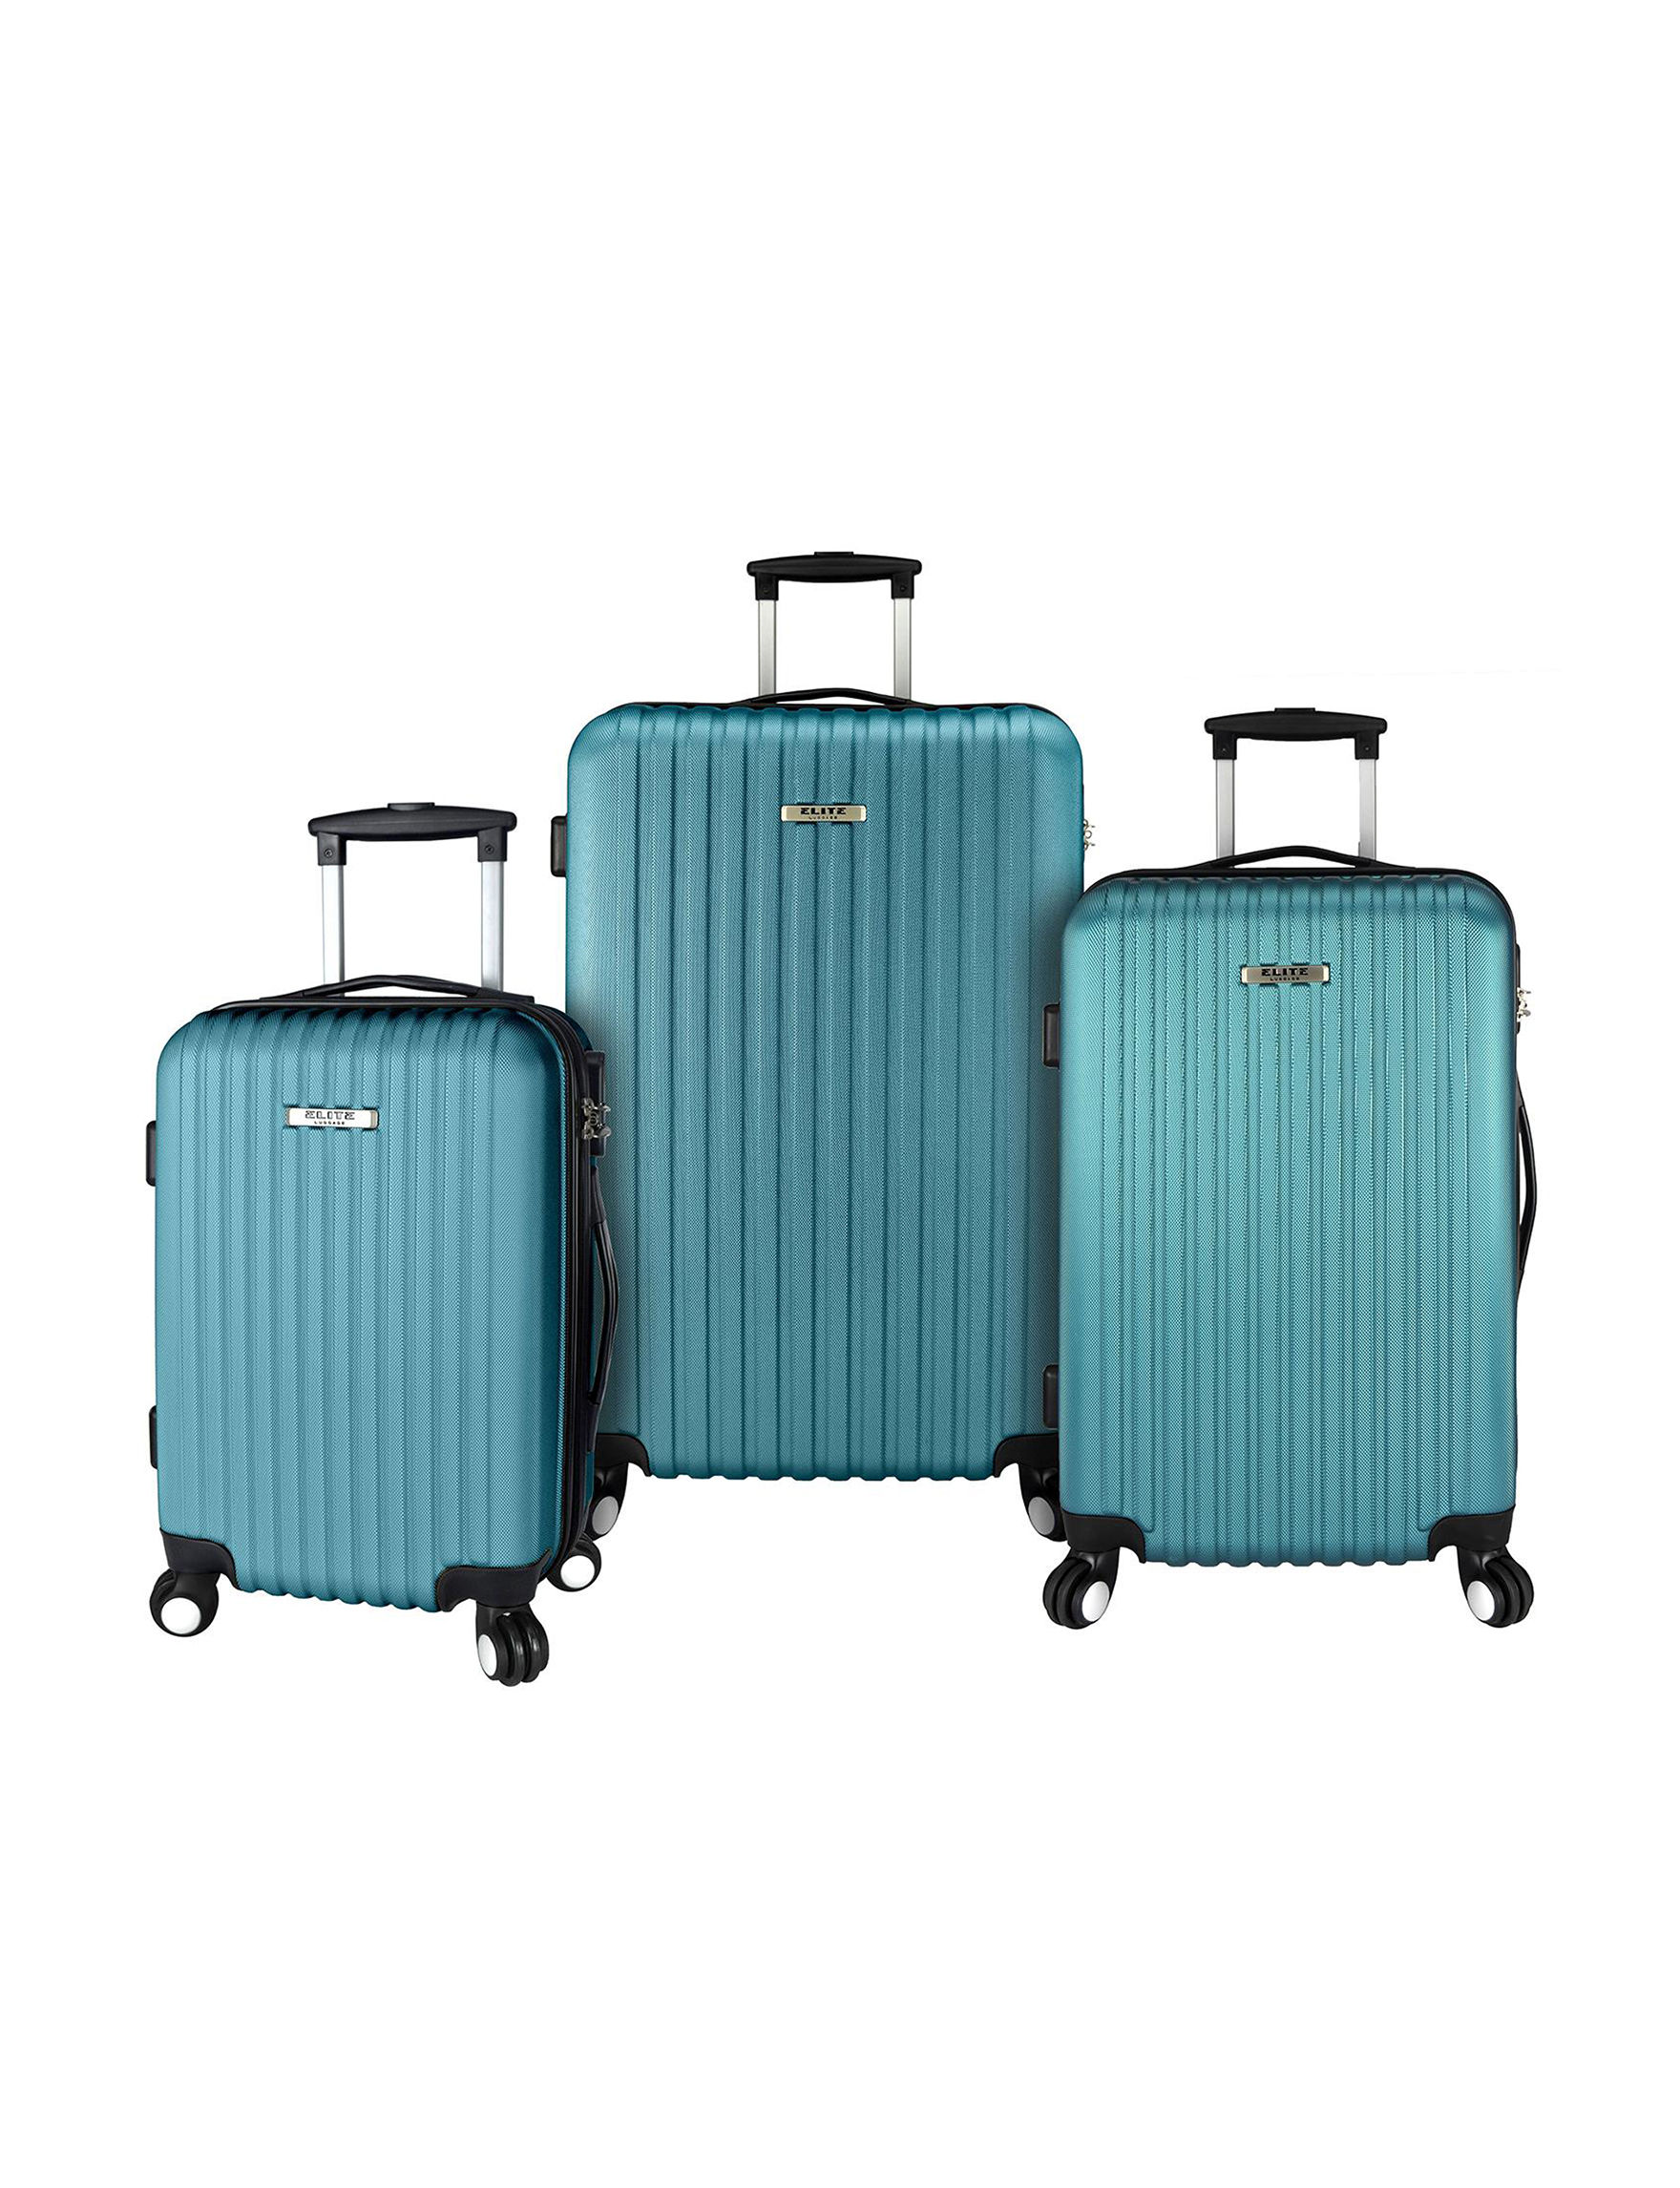 Elite Luggage Teal Luggage Sets Upright Spinners